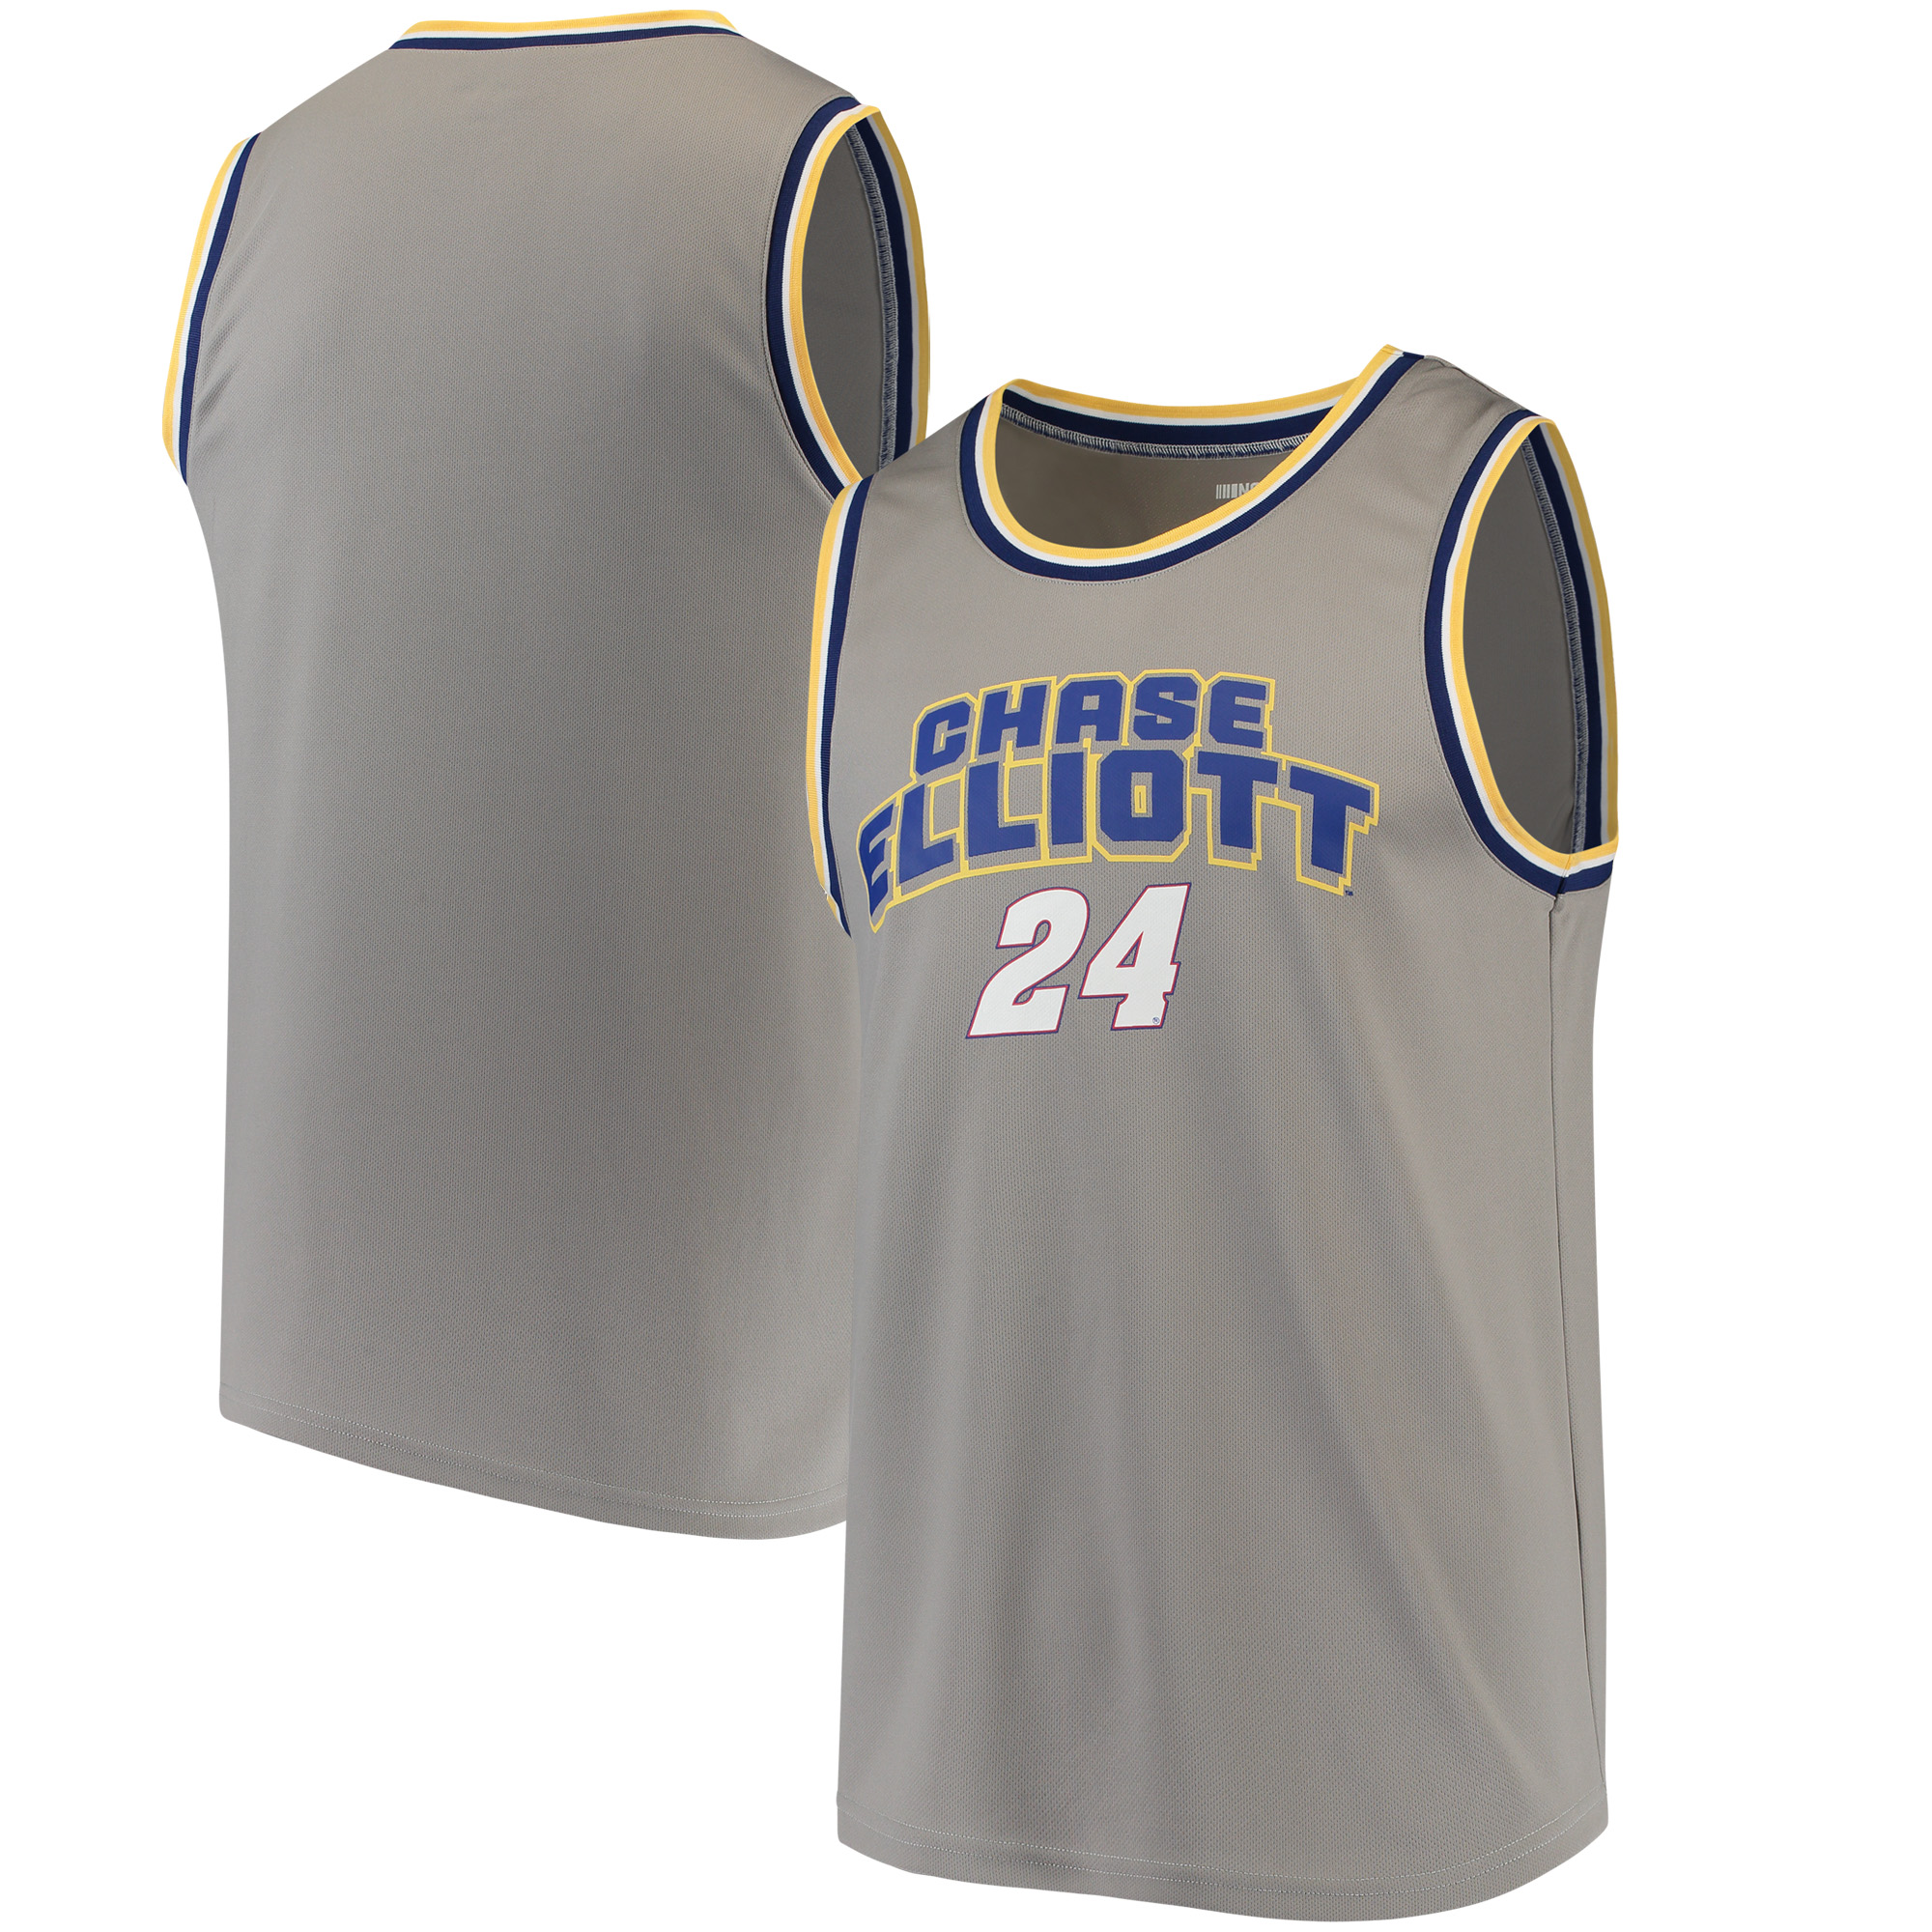 Chase Elliott Fanatics Branded Speed Lab Overtime Elevated Tank Top - Heathered Gray